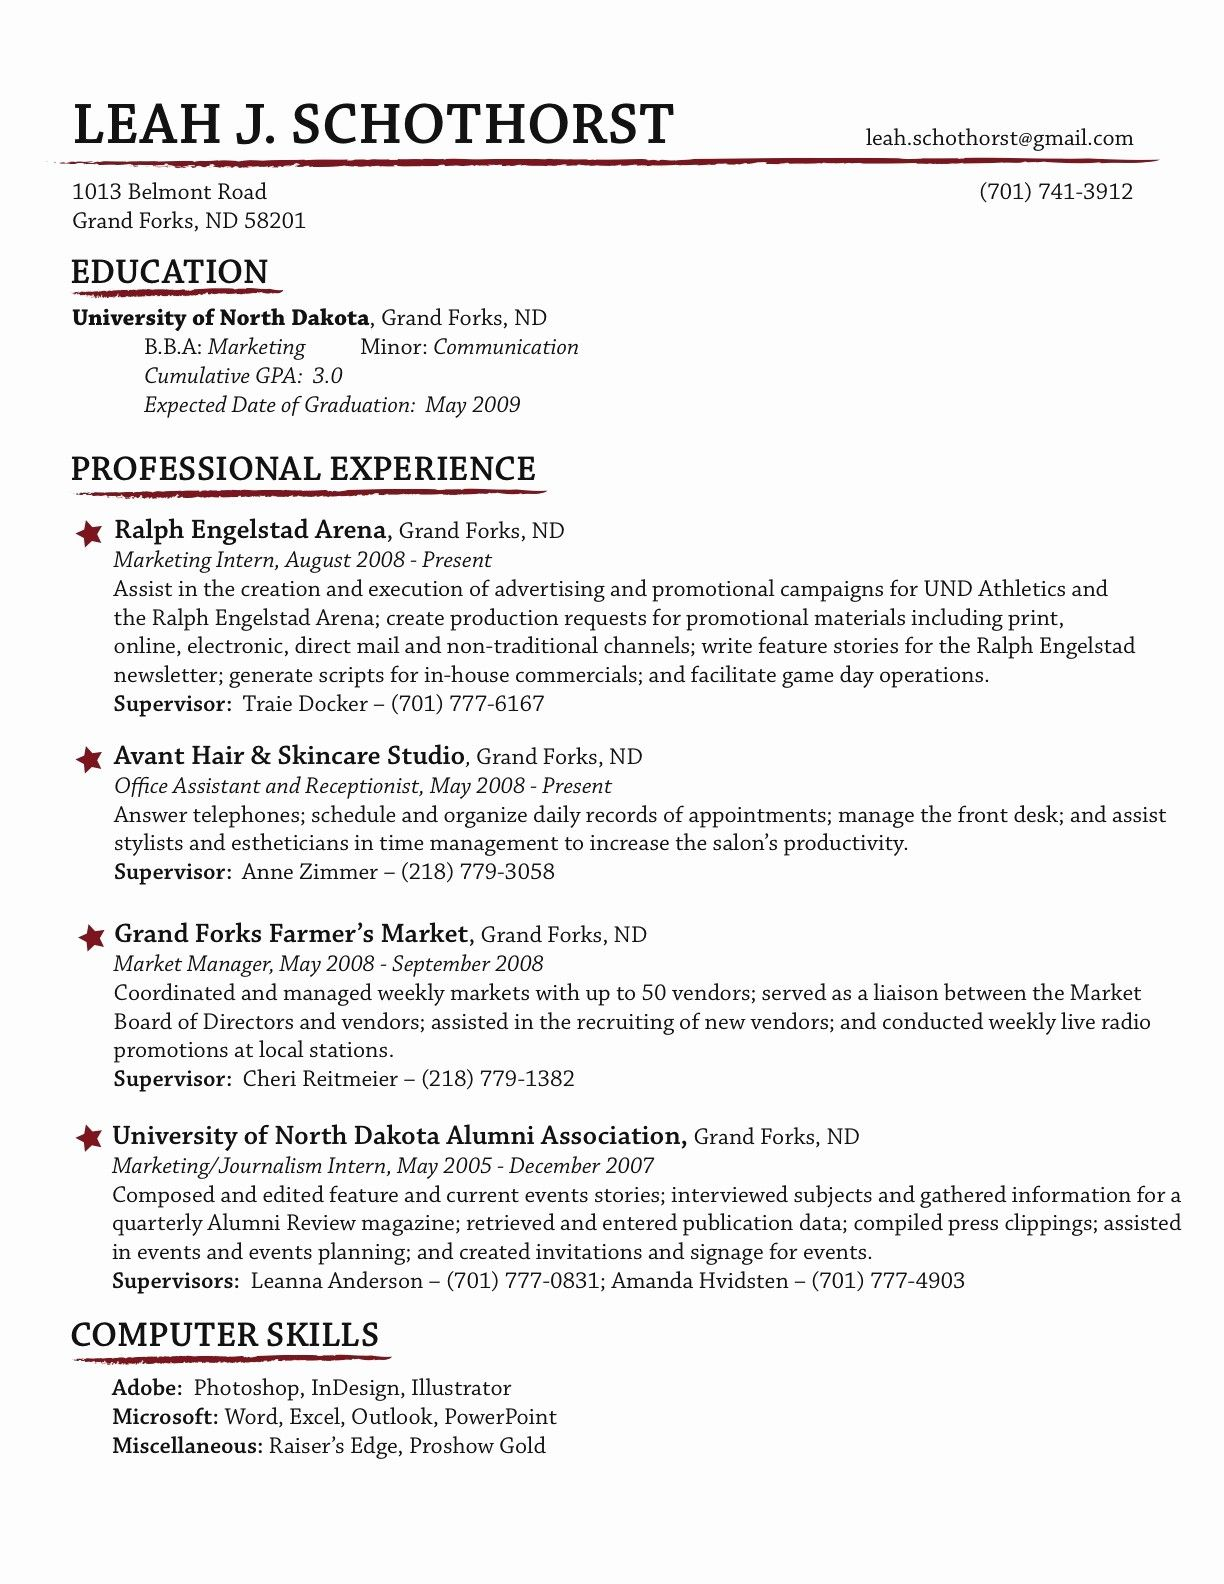 How To Form A Resume Lovely Make A Resume Resume Cv Example Template Resume Examples How To Make Resume Resume Tips